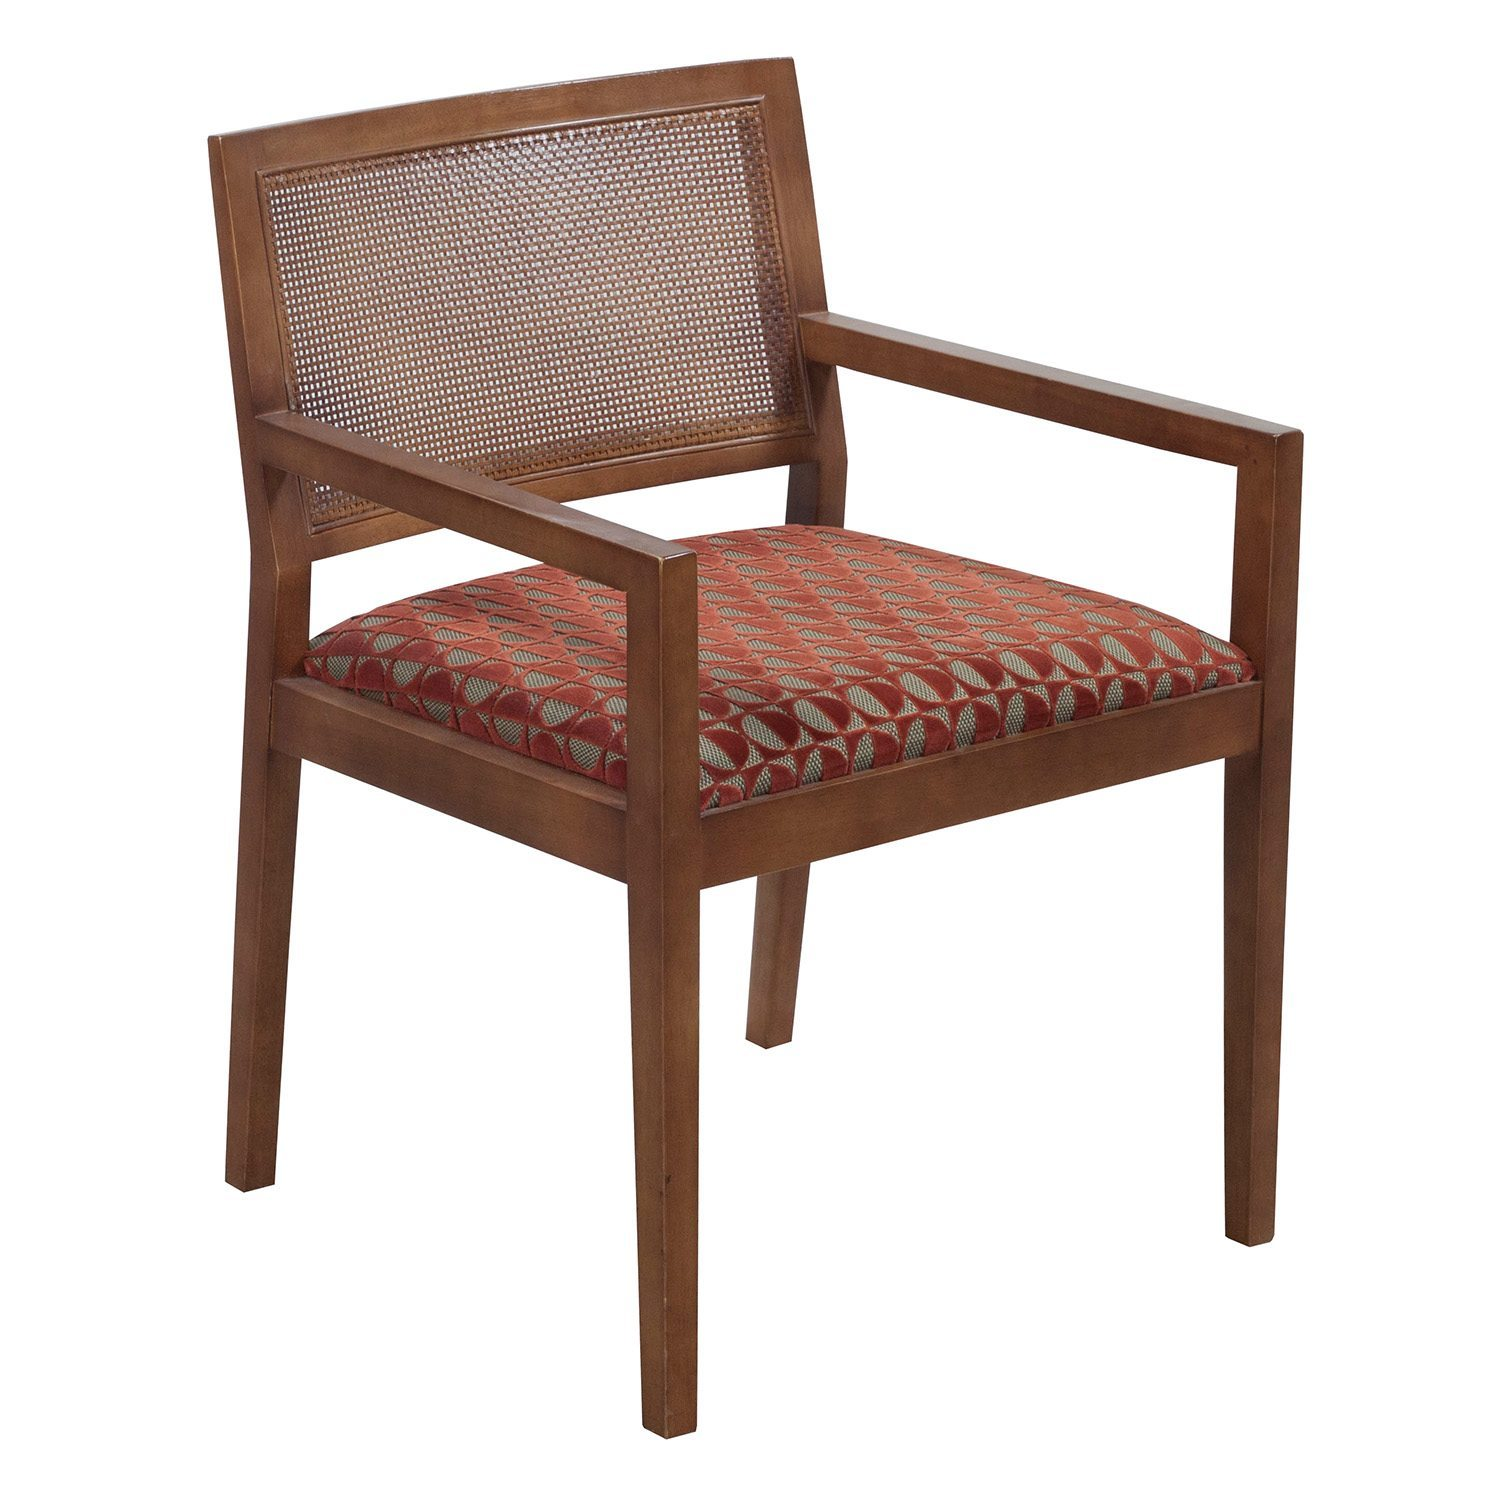 Bernhardt Clark Used Wooden Arm Chair ...